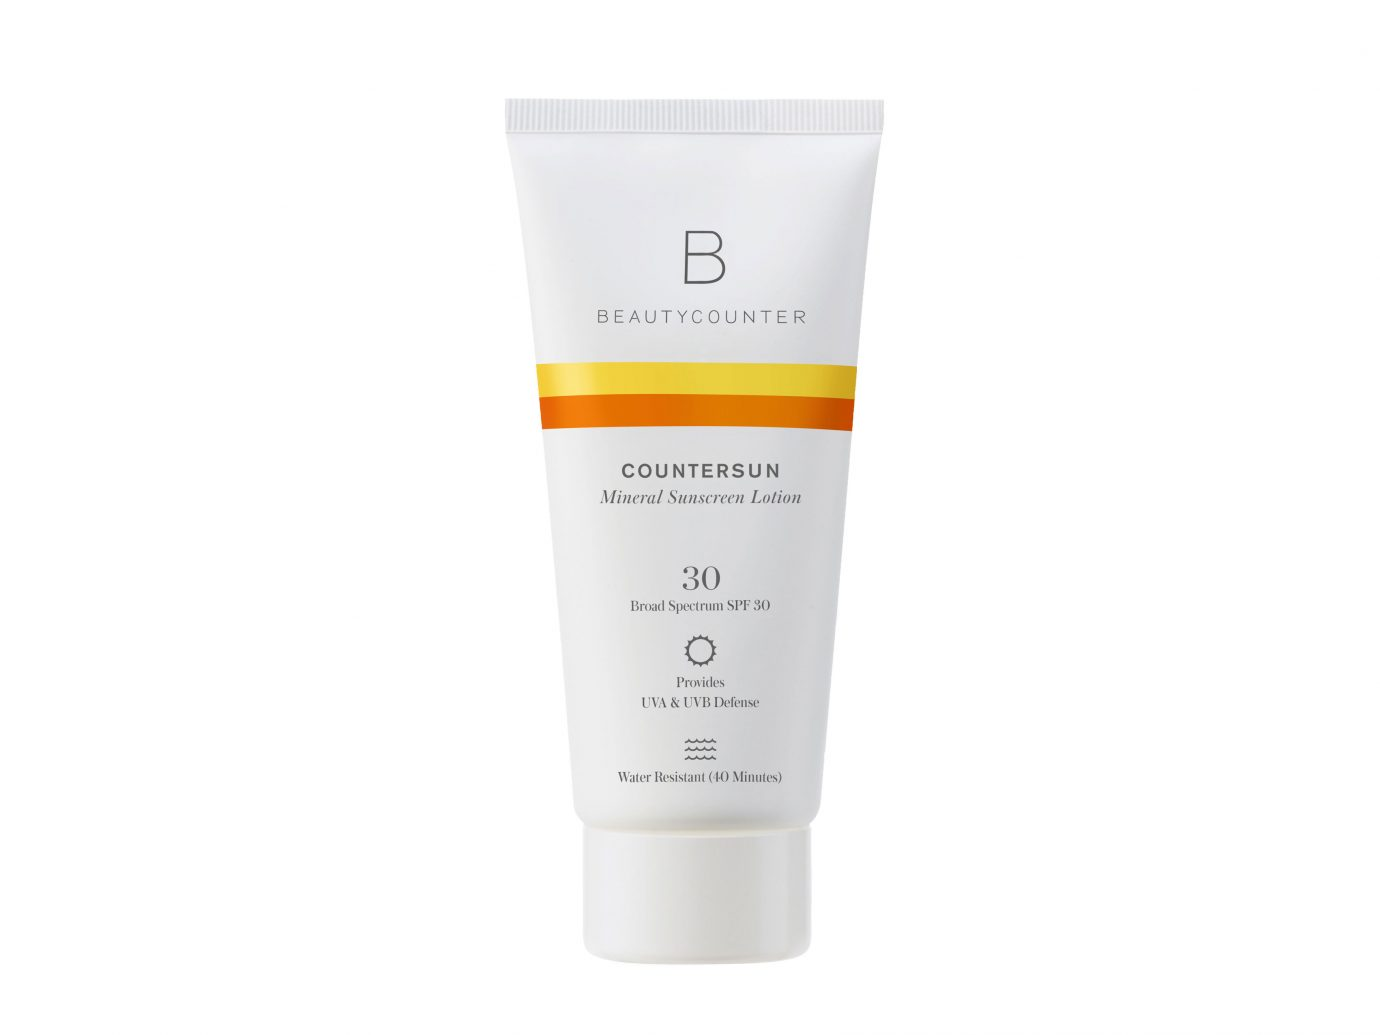 Countersun Mineral Sunscreen Lotion SPF 30